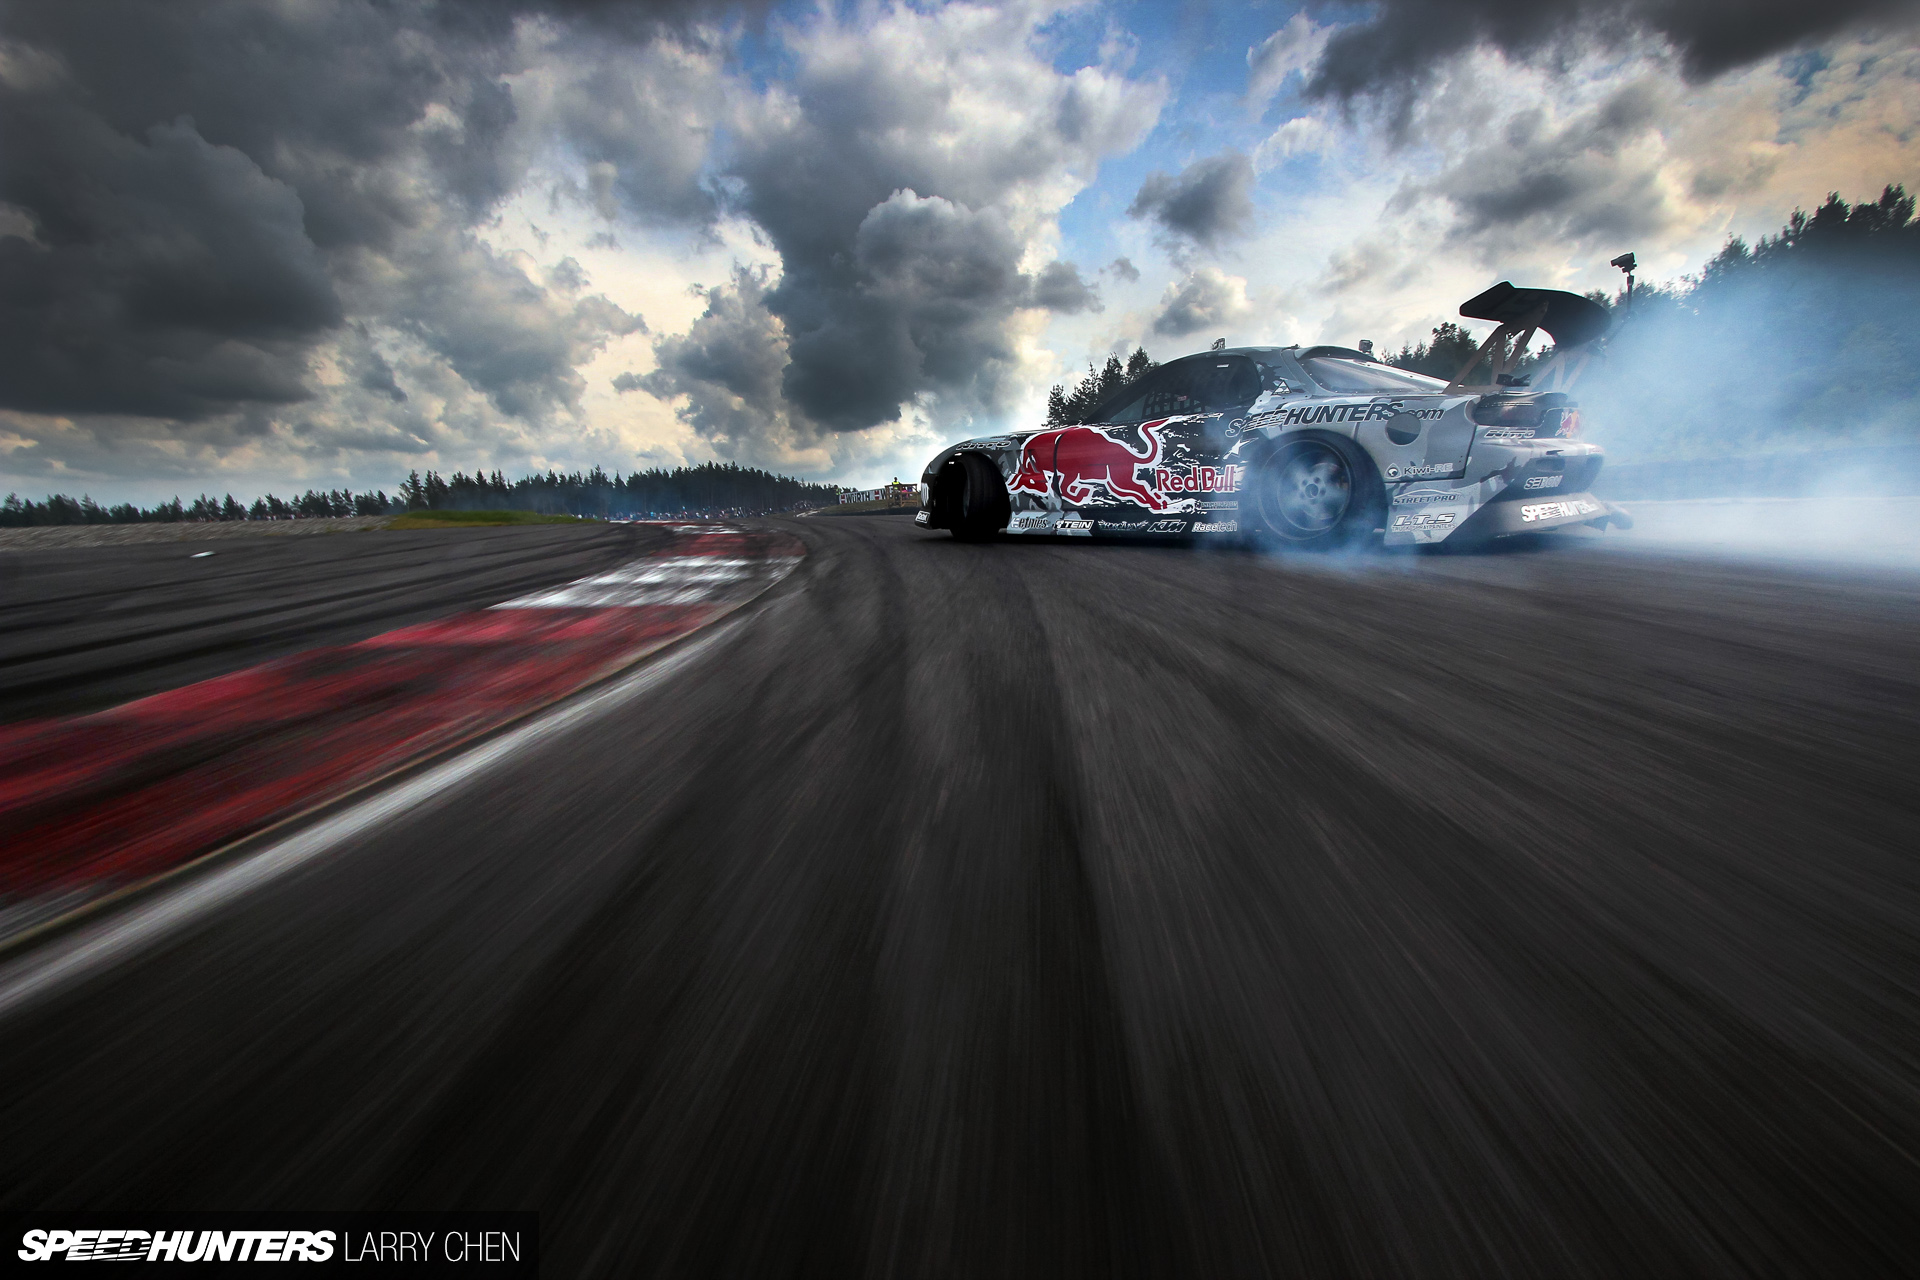 Cool Cars Drifting Wallpapers Hd Hi Res Drifter The Art Of Chen Speedhunters